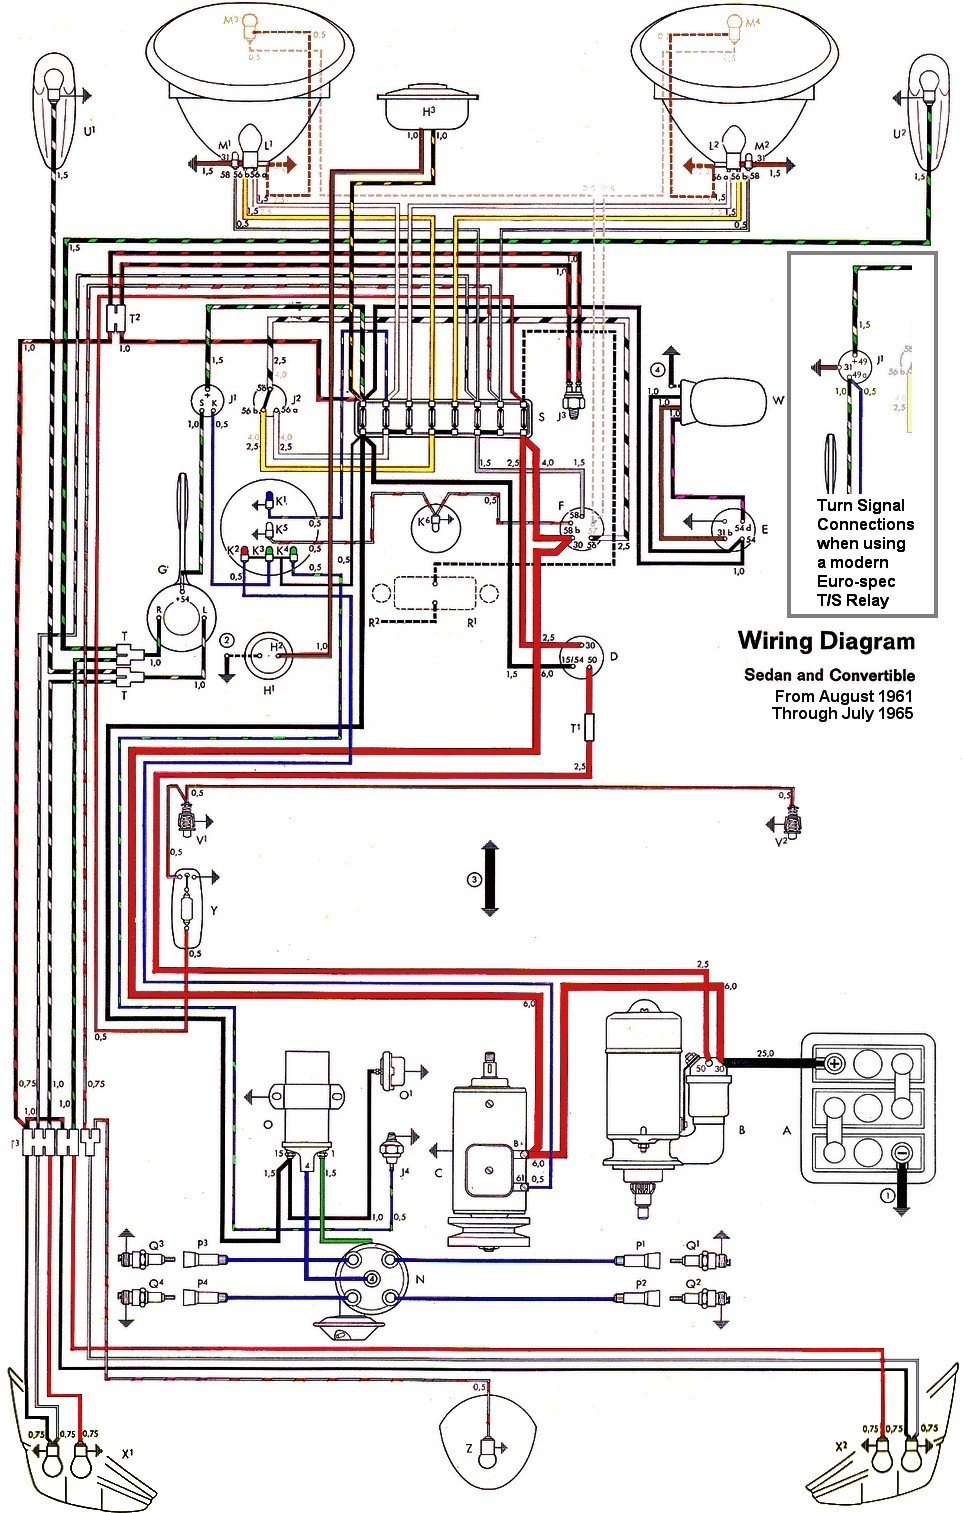 thesamba com type 1 wiring diagrams rh thesamba com 1960 vw beetle wiring diagram VW Beetle Wiring Diagram